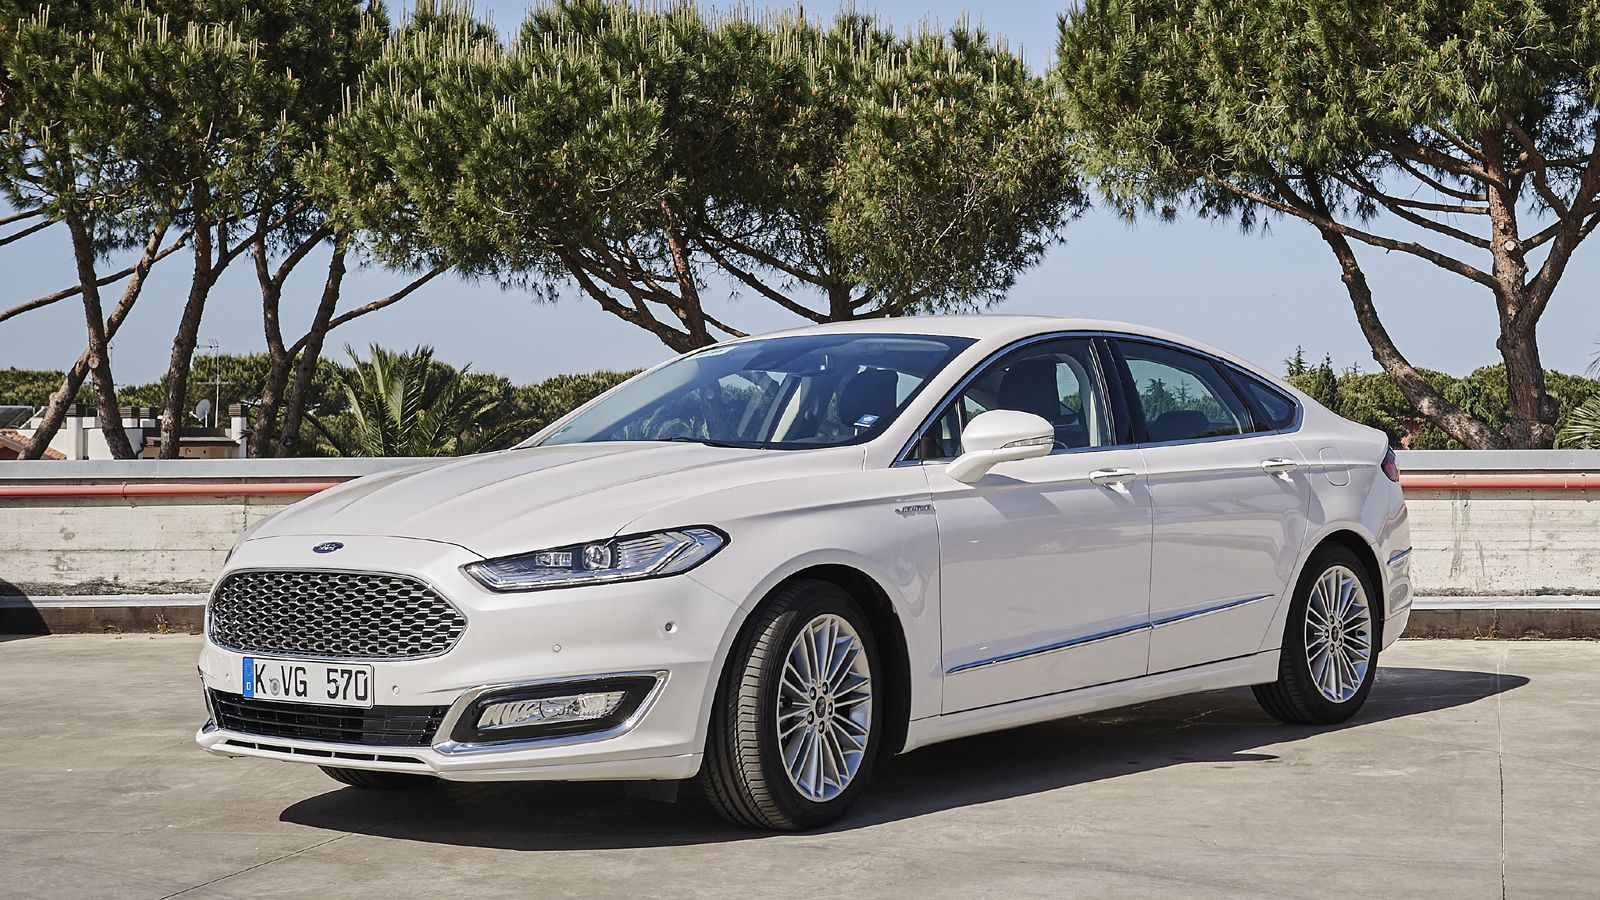 ford mondeo sw vignale ford mondeo vignale sw ford vignale mondeo sw youtube essai ford. Black Bedroom Furniture Sets. Home Design Ideas